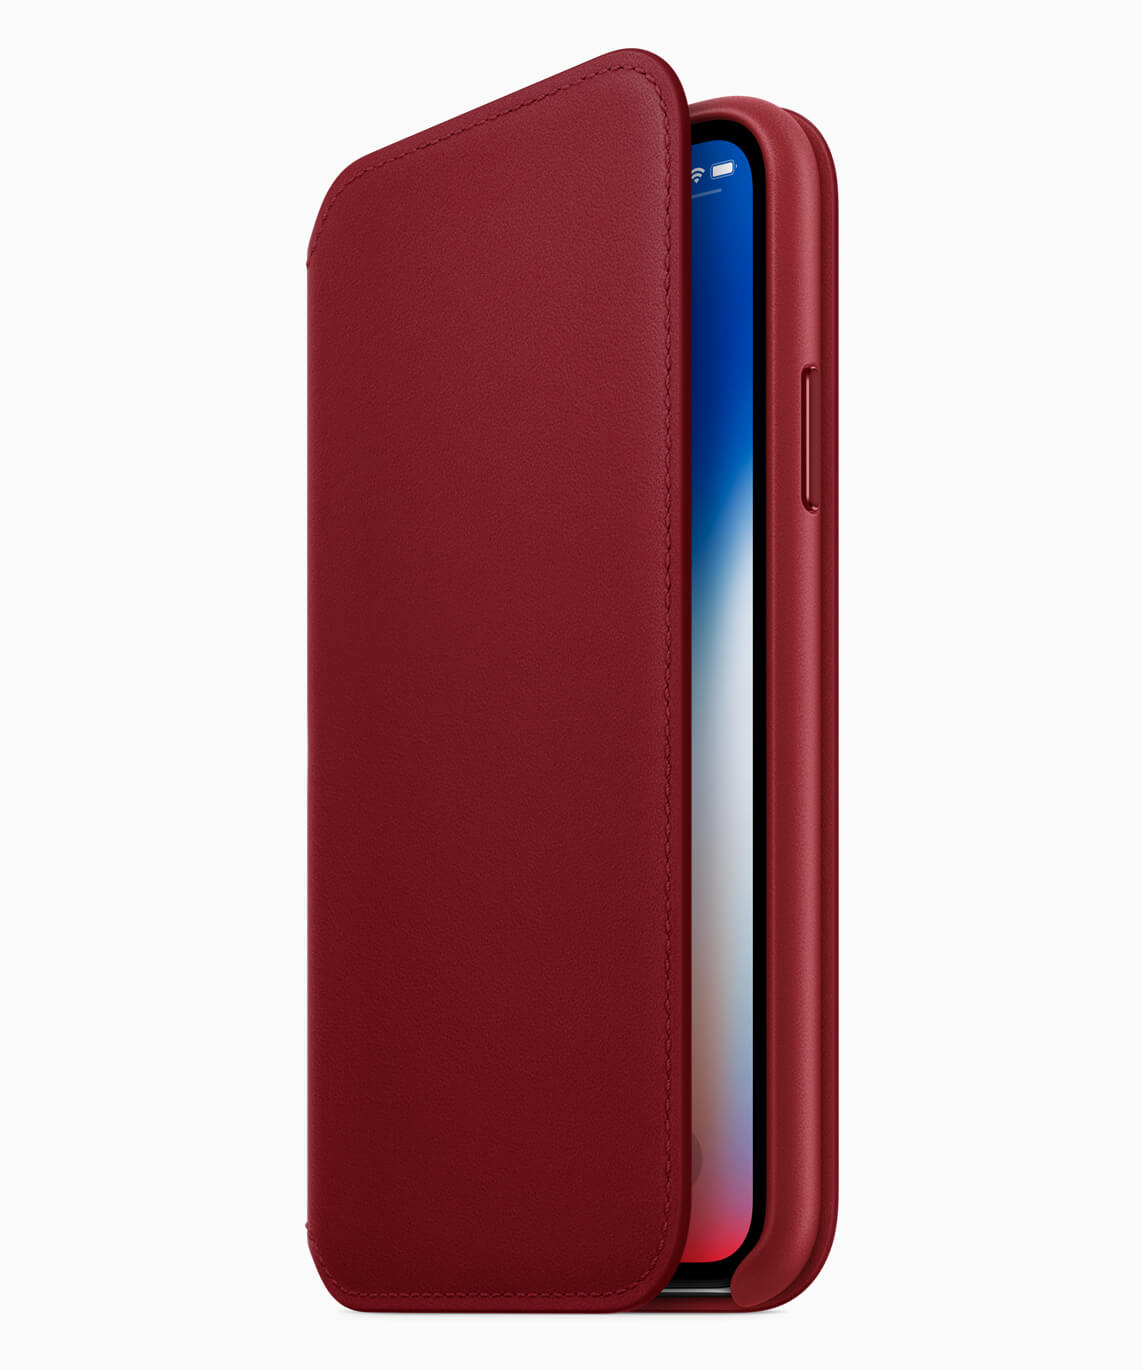 iPhone 8 Plus PRODUCT RED Special Edition